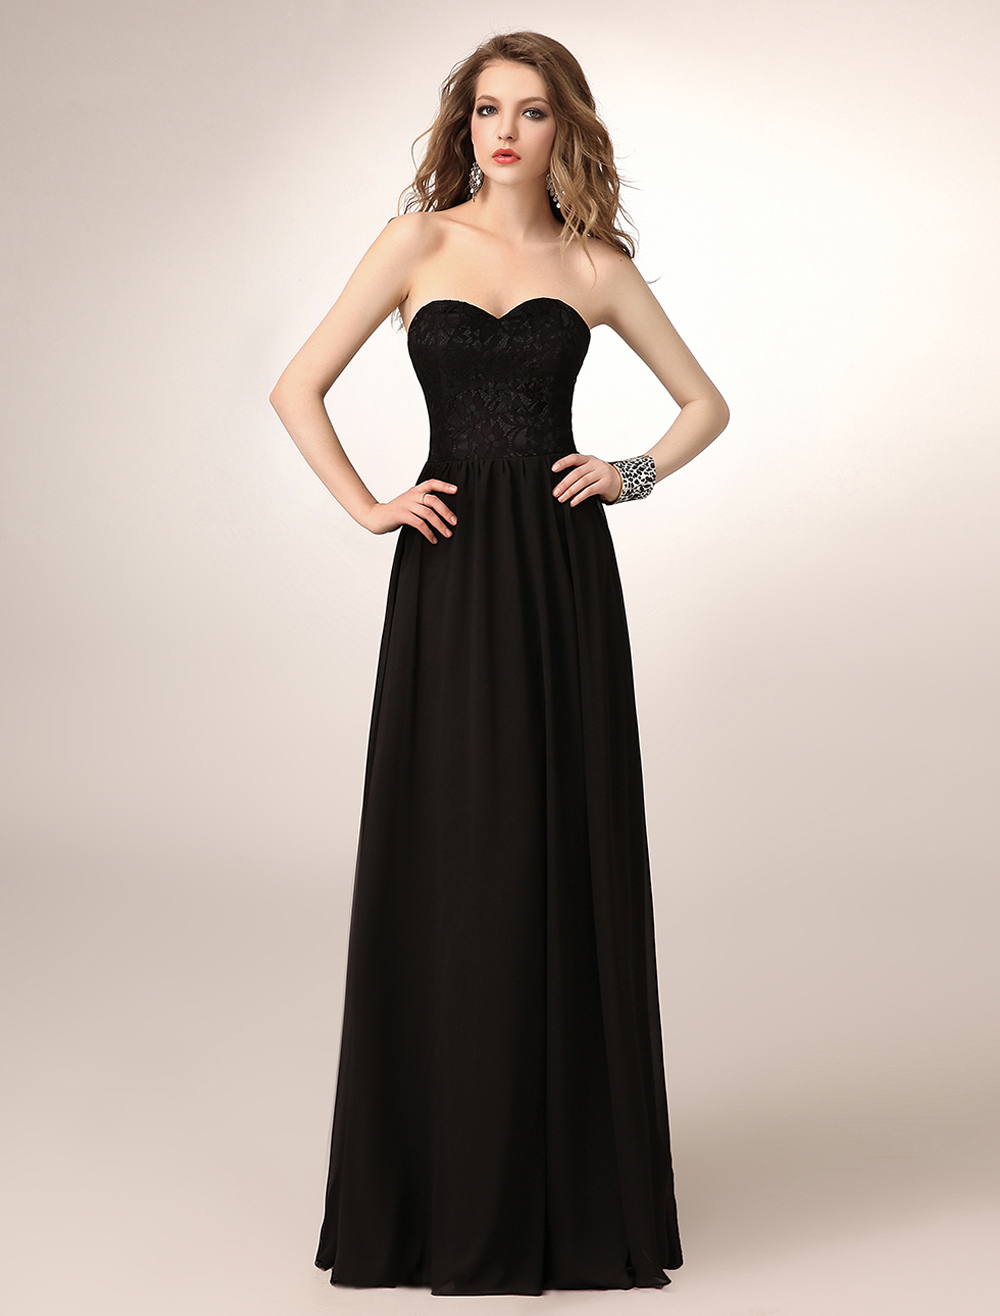 Buy Floor-Length Black A-line Lace Chiffon Bridesmaid Dress with Sweetheart Neck for $119.99 in Milanoo store